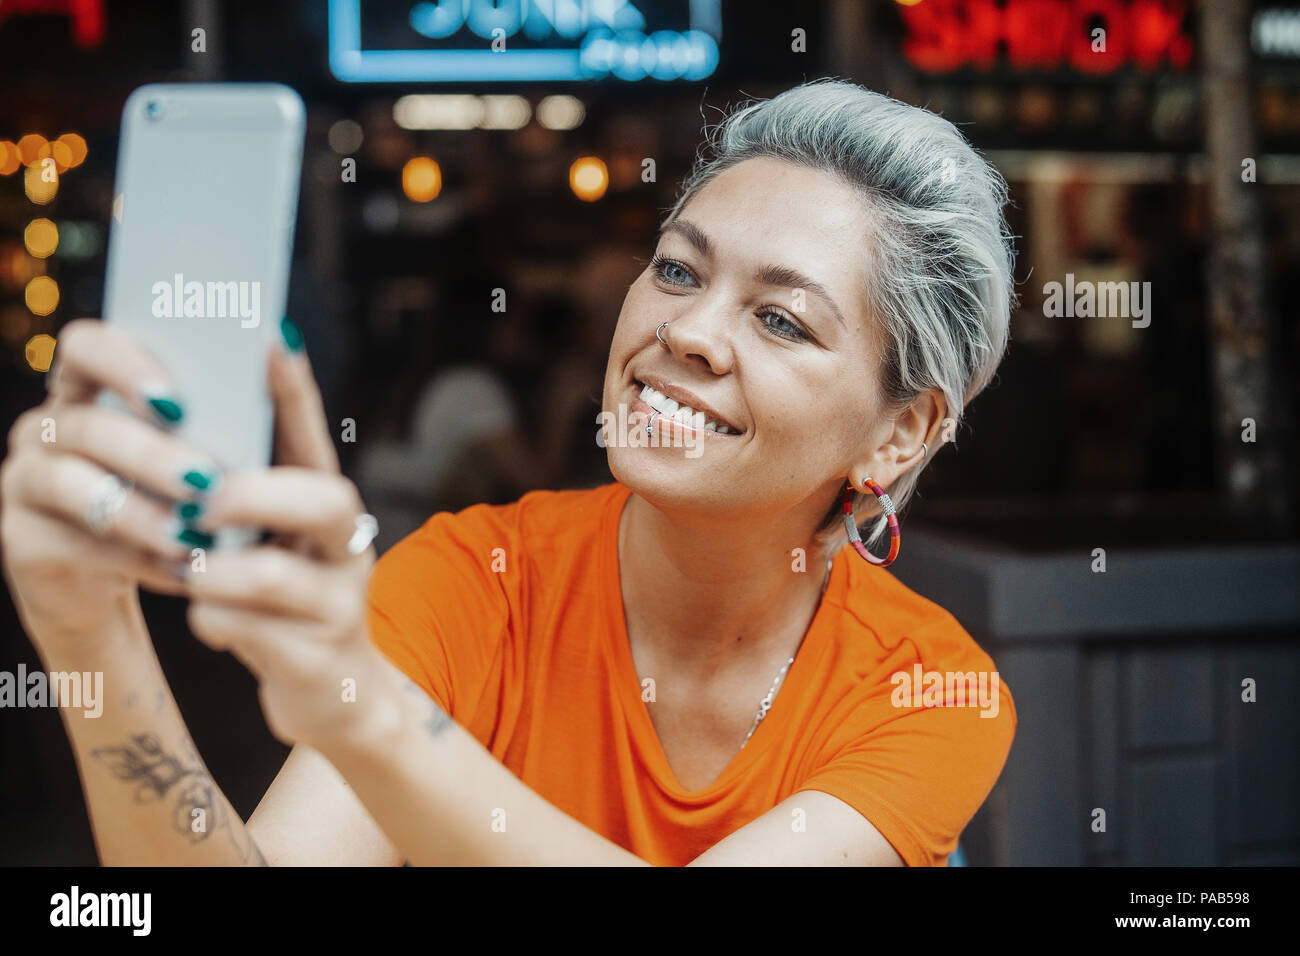 Close up of attractive blonde girl in orange T-shirt making selfie at cafe - Stock Image